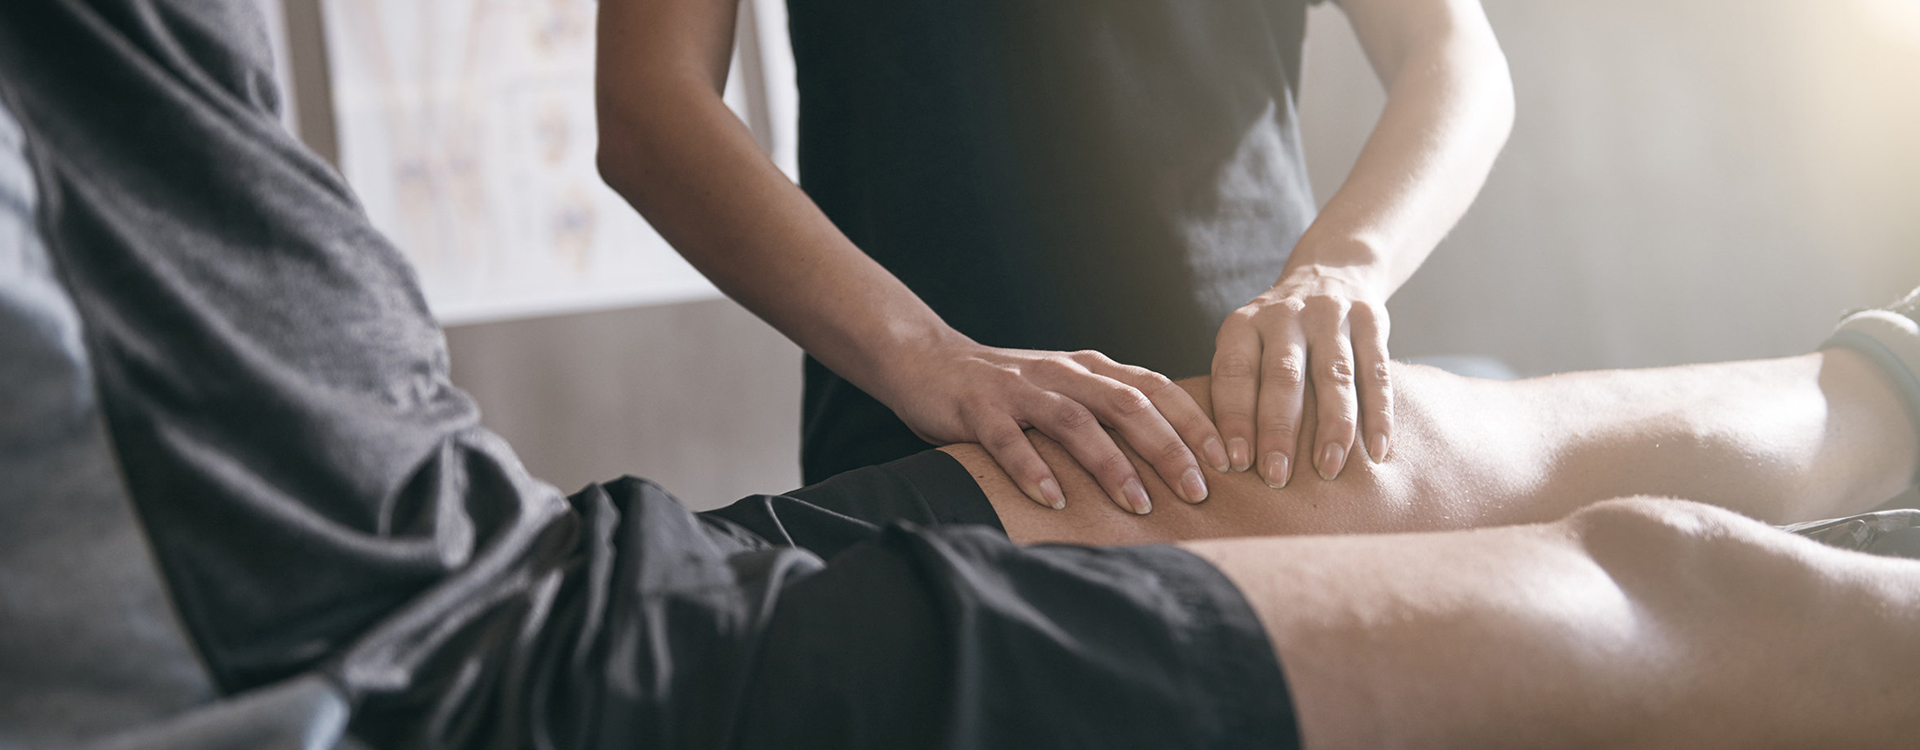 Personalised sports massage in Canary Wharf by Waterside Physiotherapy, the experienced sports physiotherapists